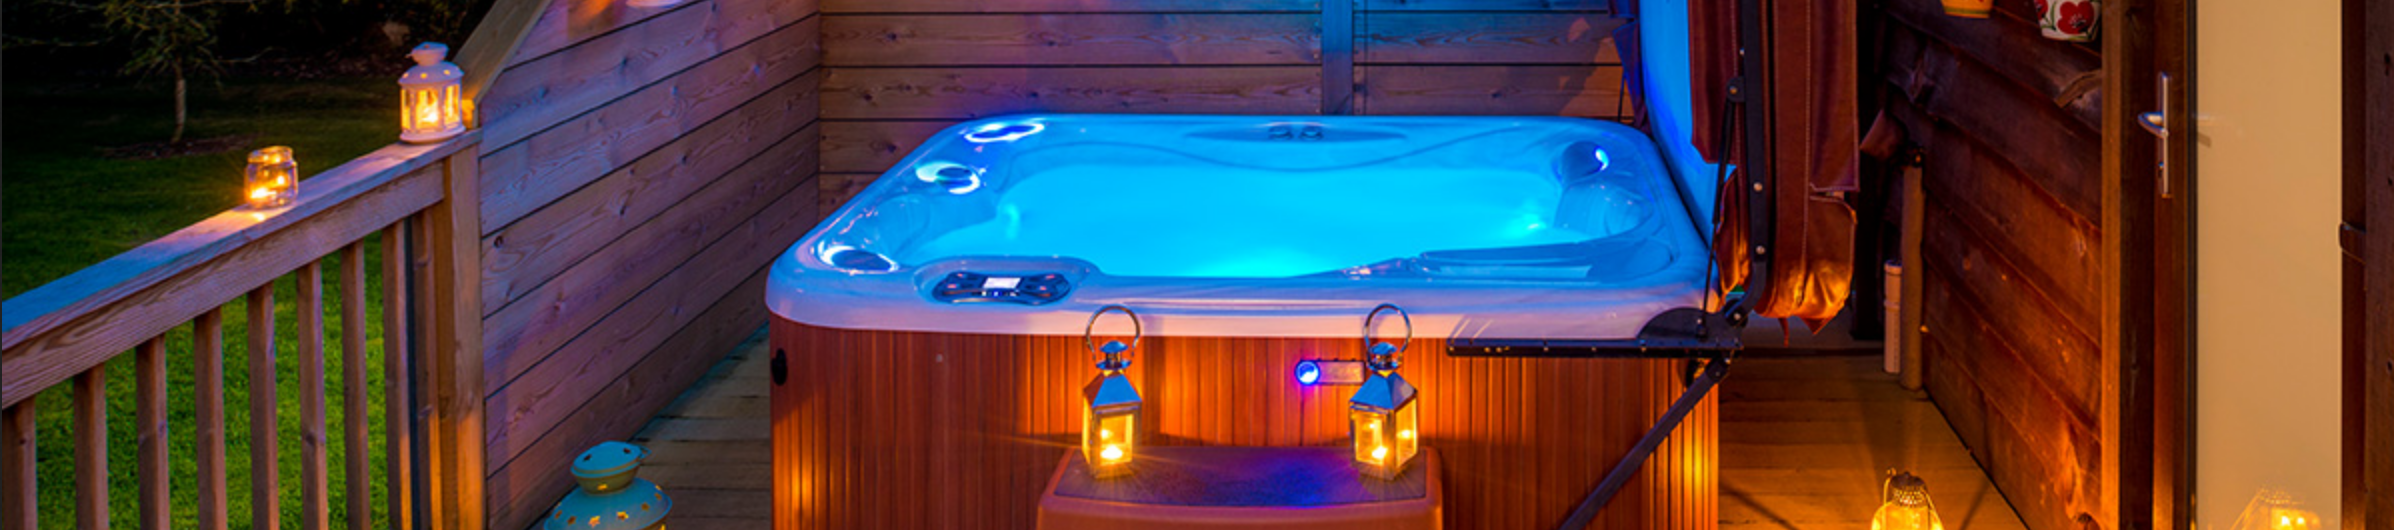 Hot Tub With Lights